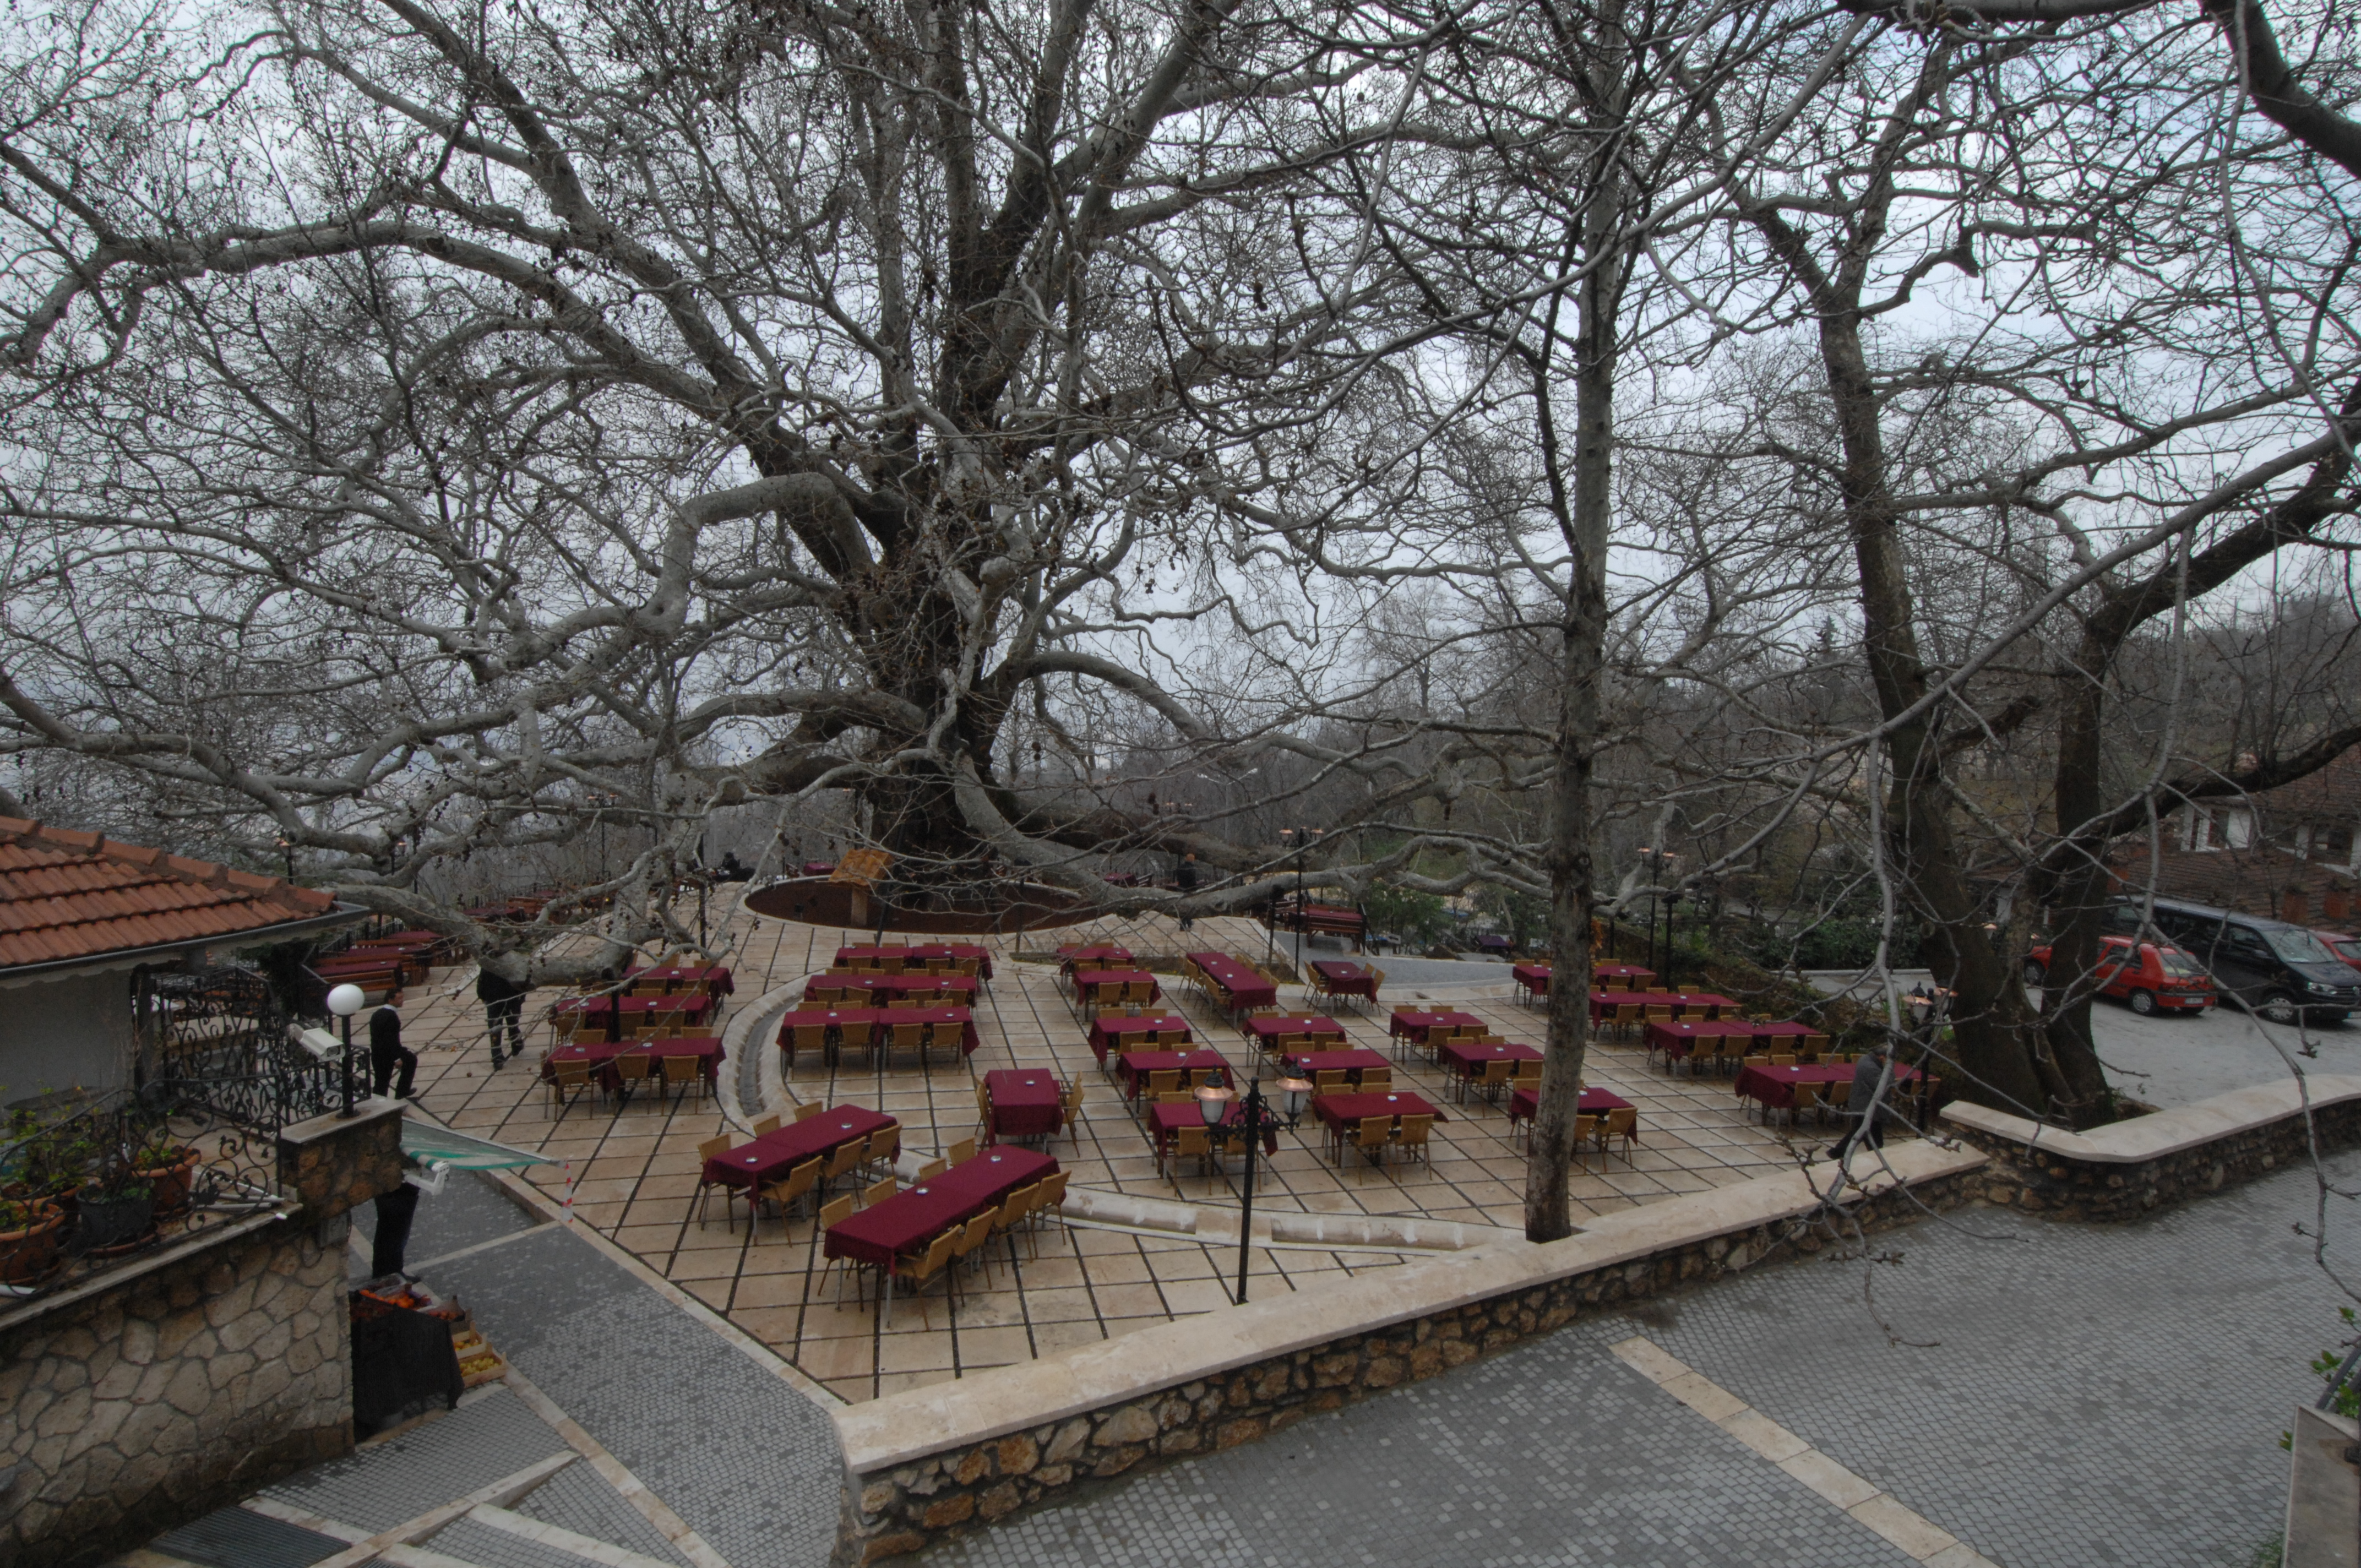 """IFLA Europe Exhibition """"Landscape as a Common Ground"""" continues - we present project from Turkey entitled: """"Plaza of monumental Inkaya Plane Tree""""!"""